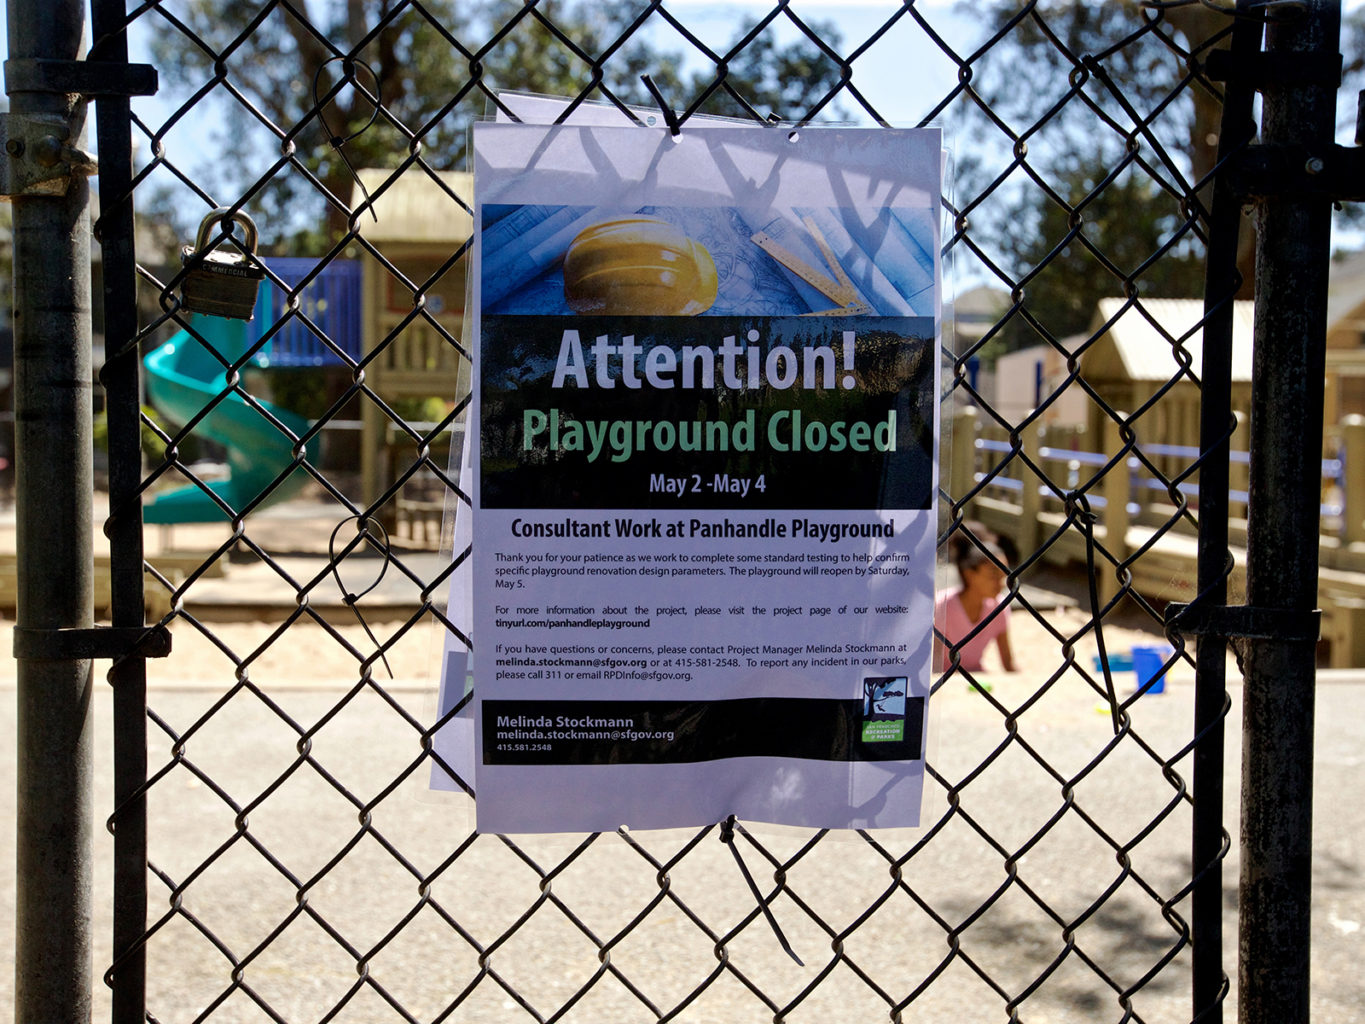 A sign at the Panhandle playground lets people know about a short-term closure in preparation for renovations. (Kevin N. Hume/S.F. Examiner)